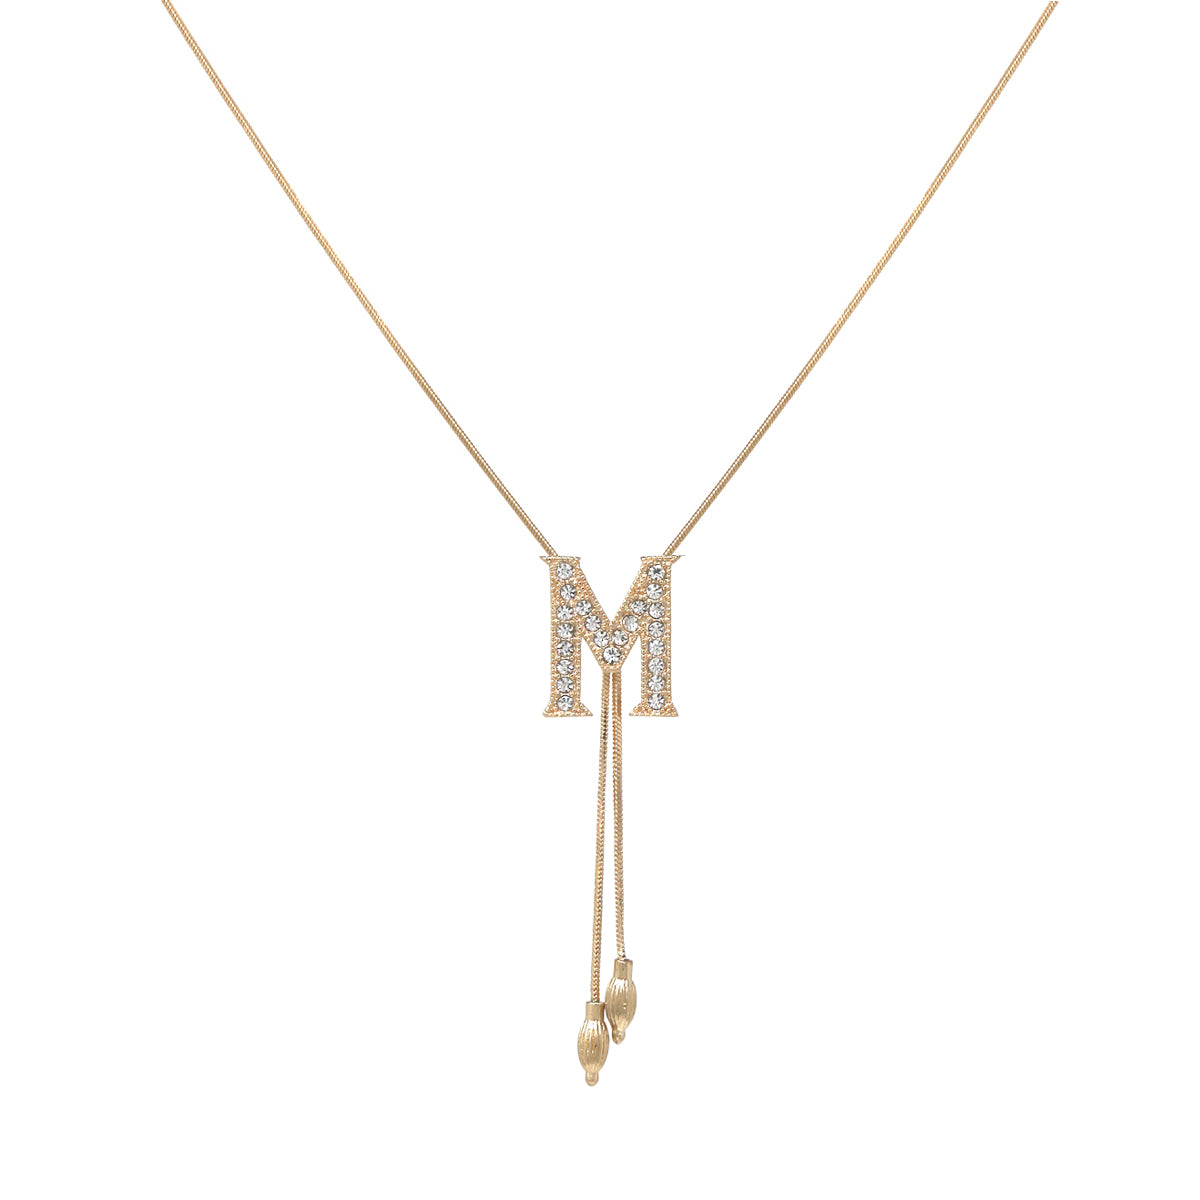 M Glass Paved Sliding Initial Pendant Necklace